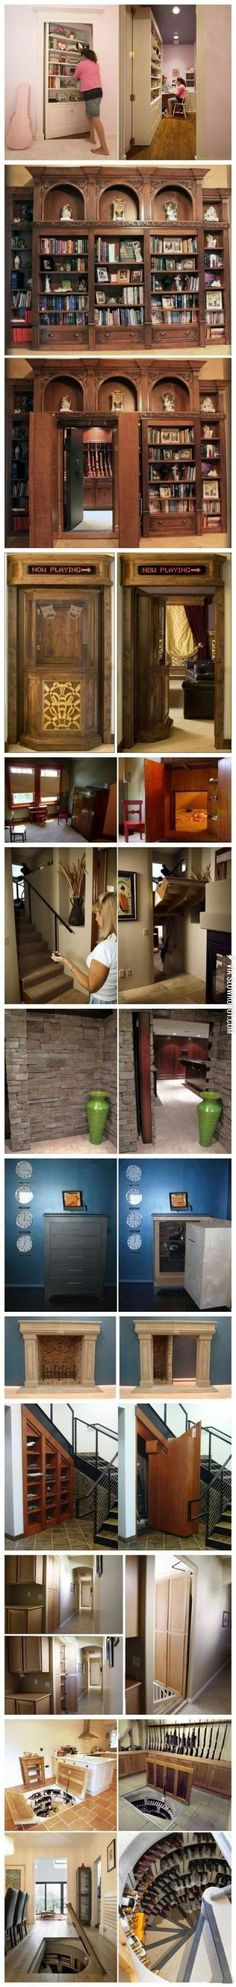 Because secret rooms are awesome.